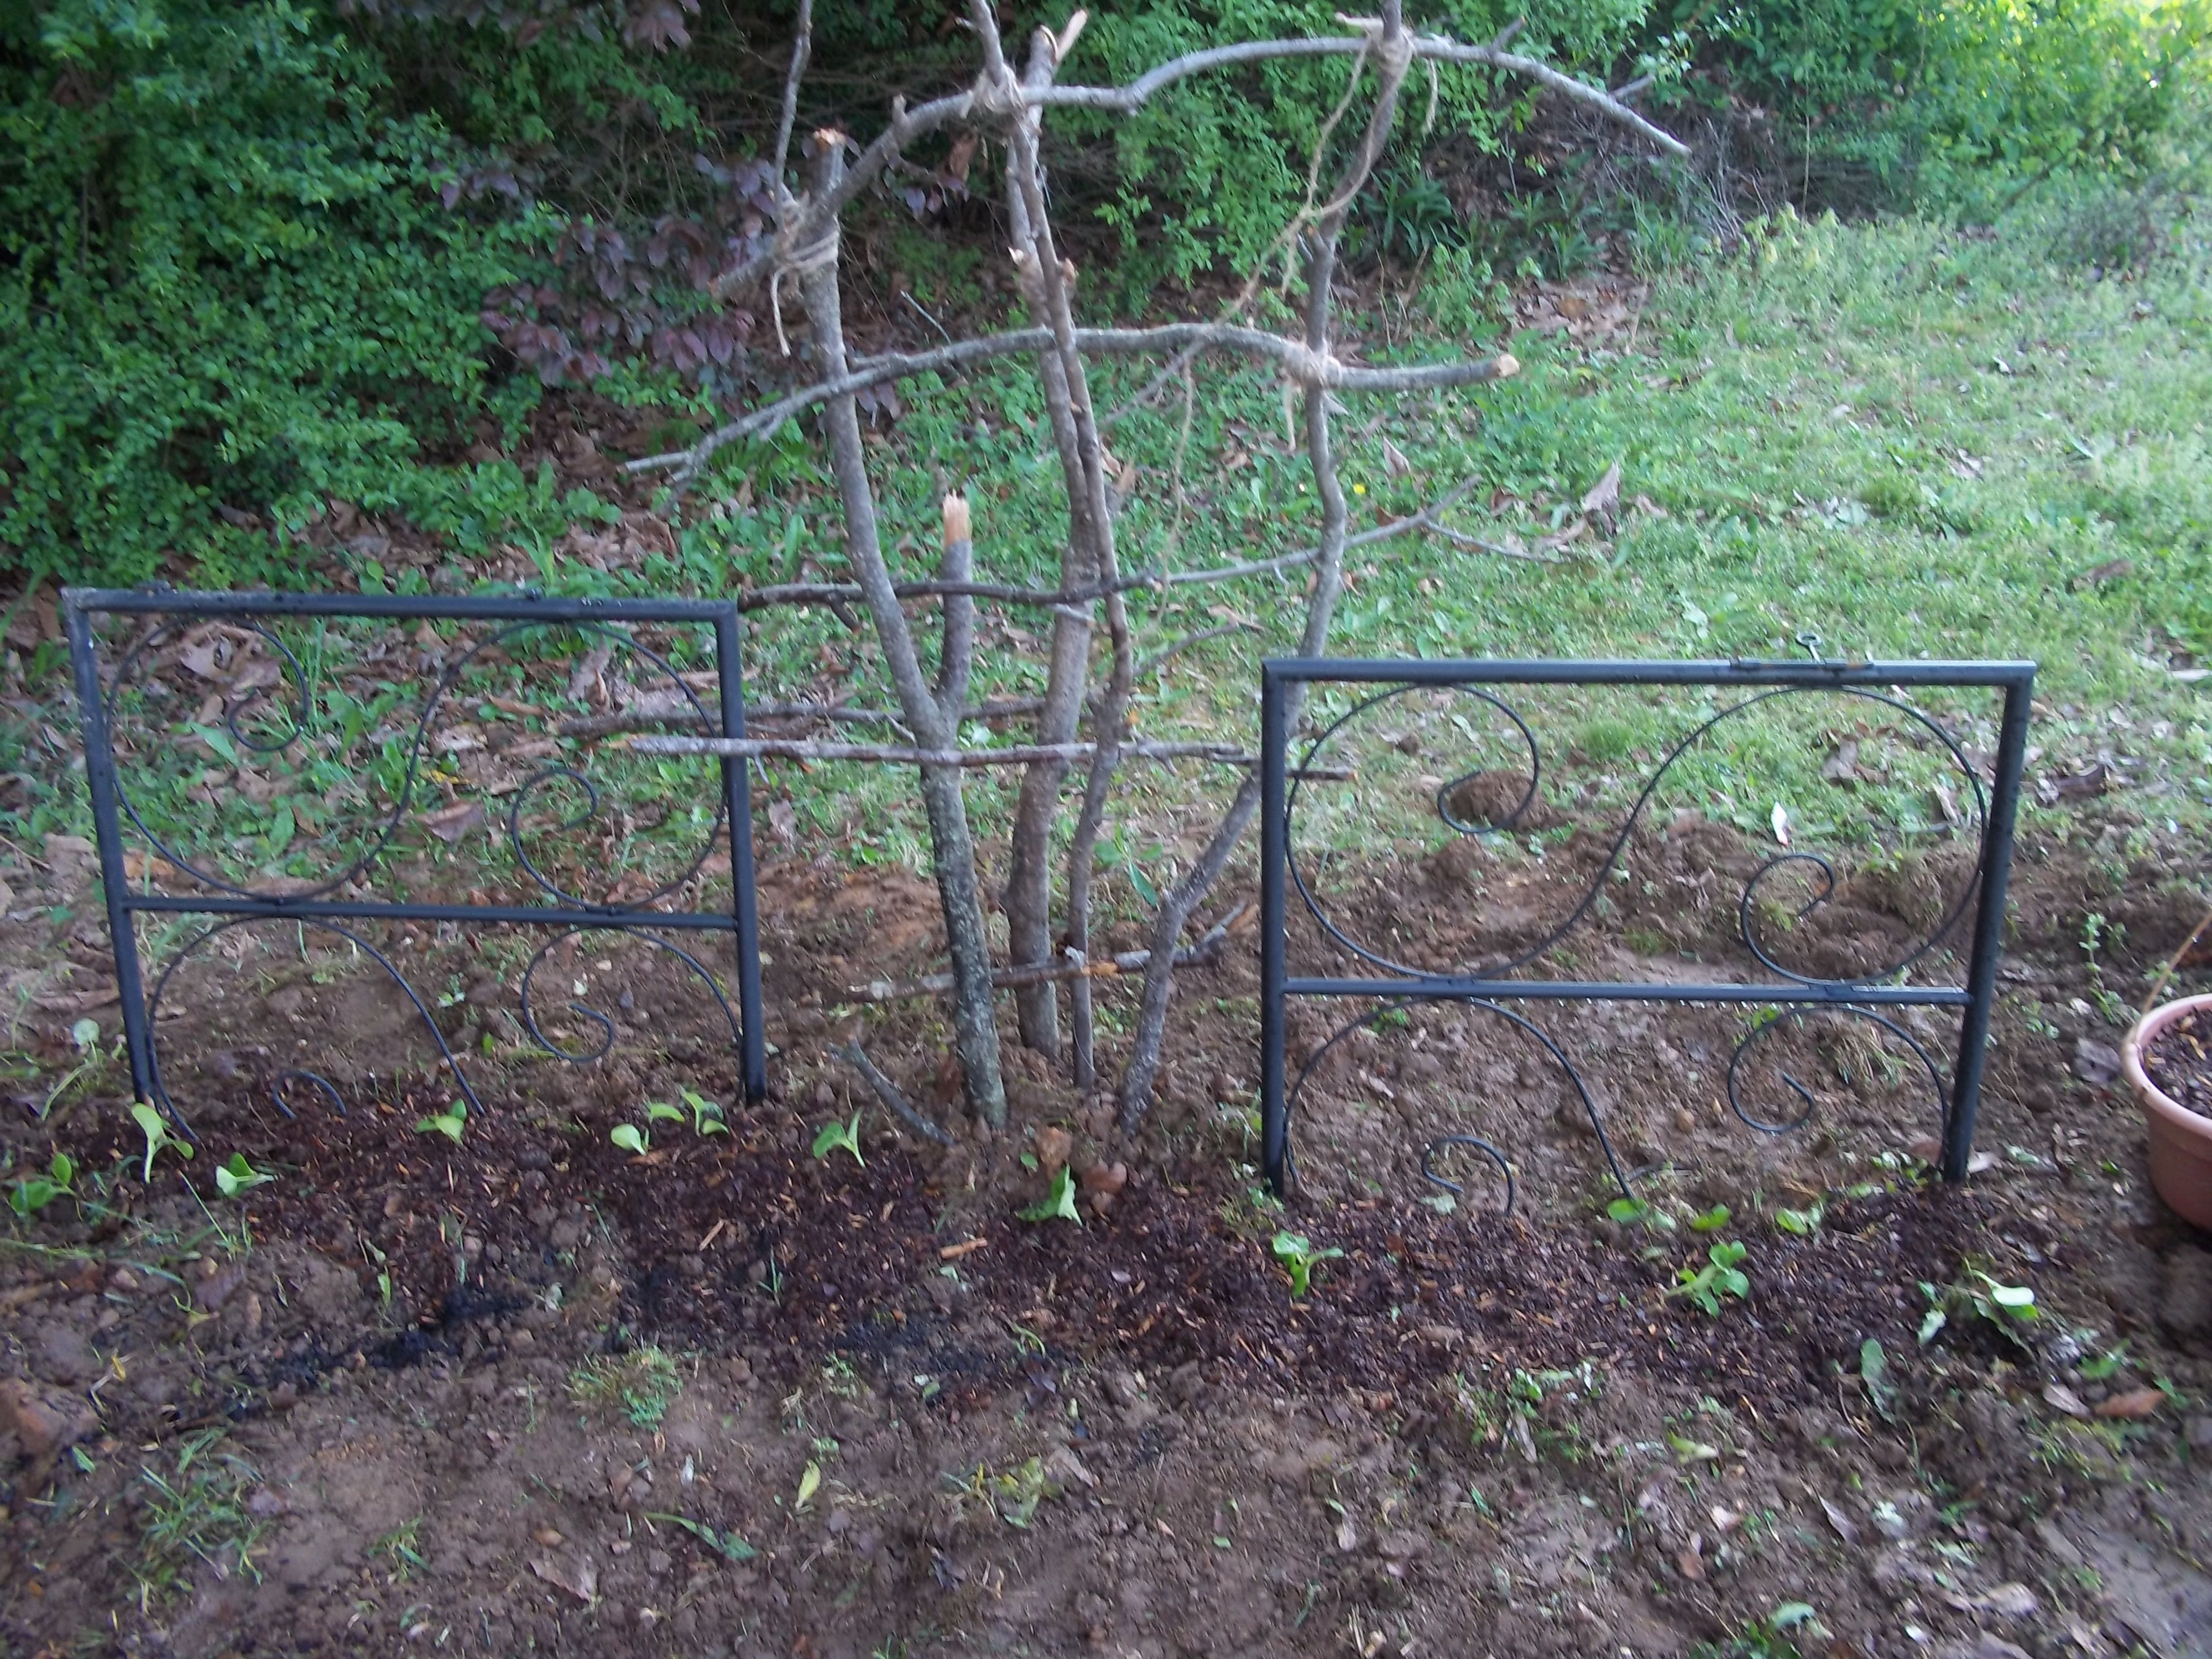 I made this trellis out of sticks I found laying around